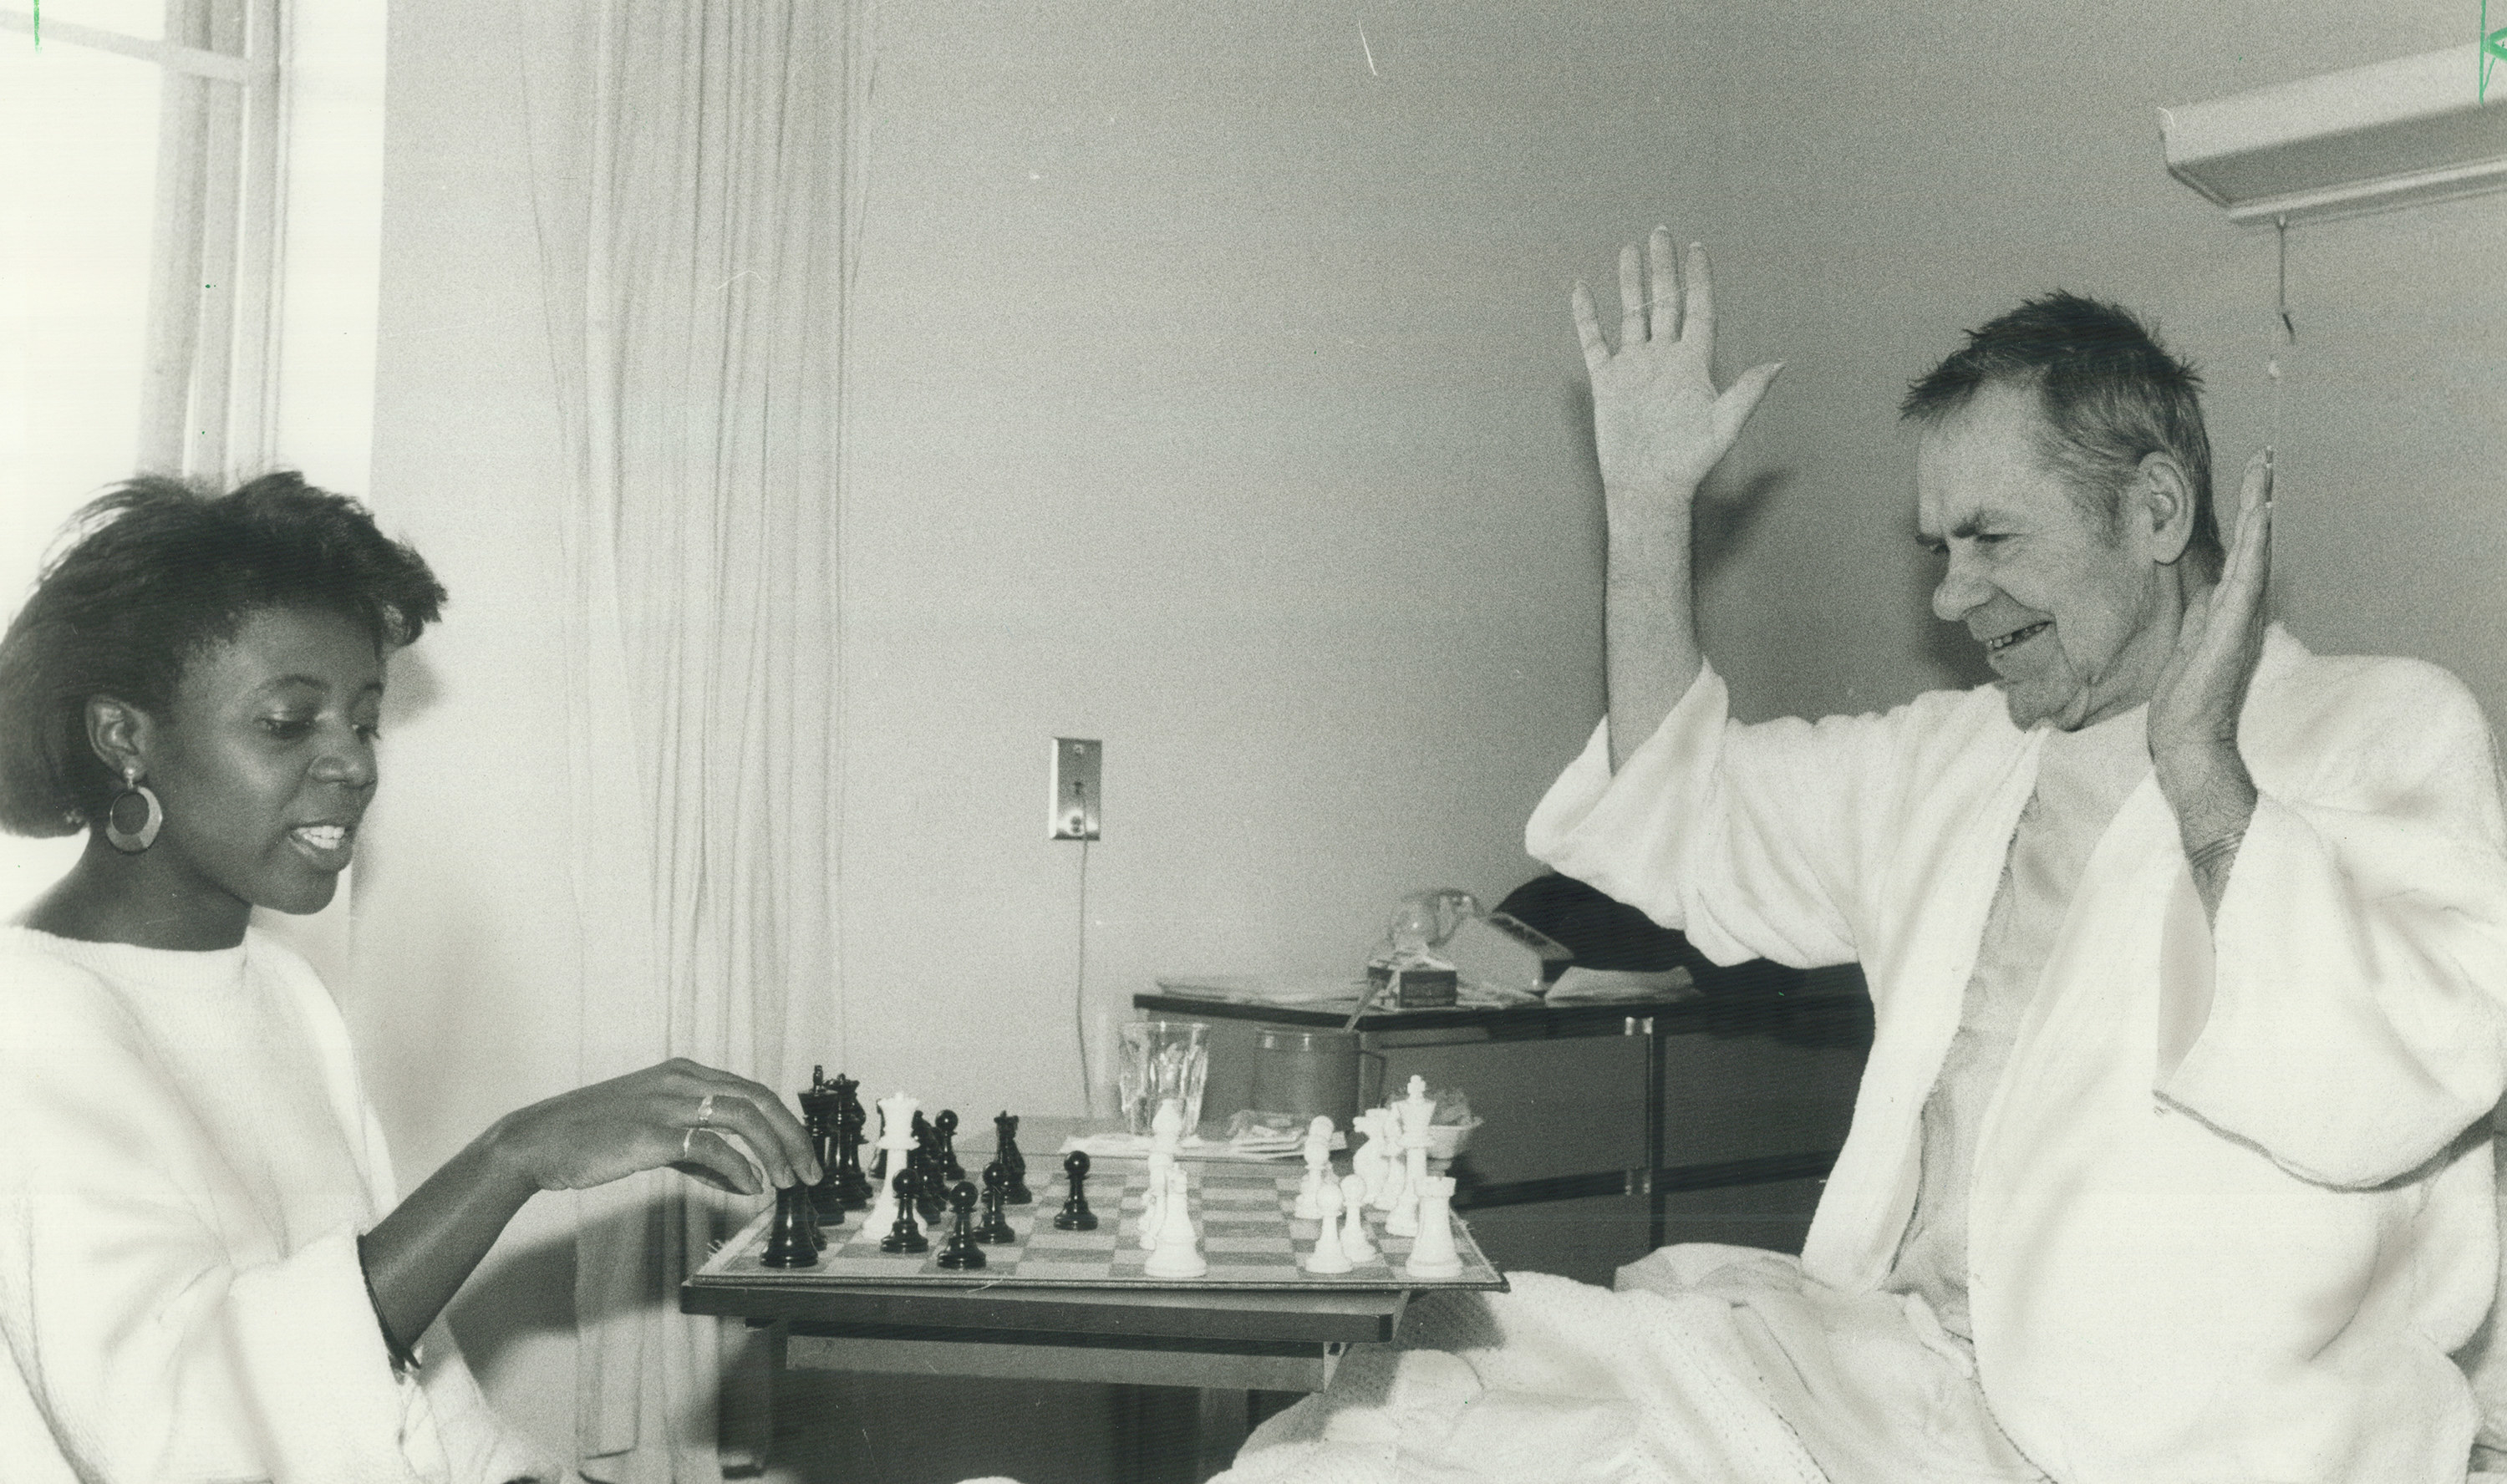 A young woman and an old man in a hospital bed playing chess.